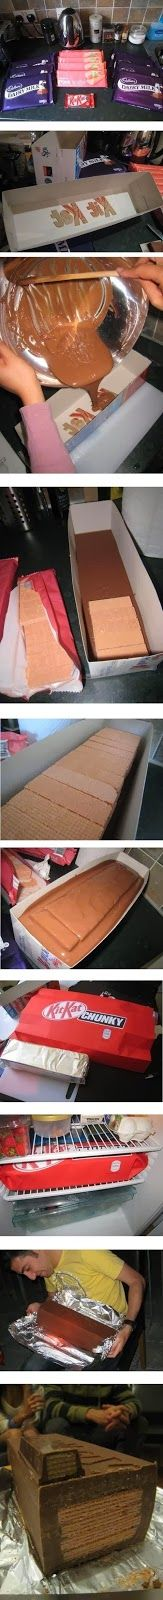 How To Make A Giant Kit Kat Bar! This Would Be Such A Fun Gift!